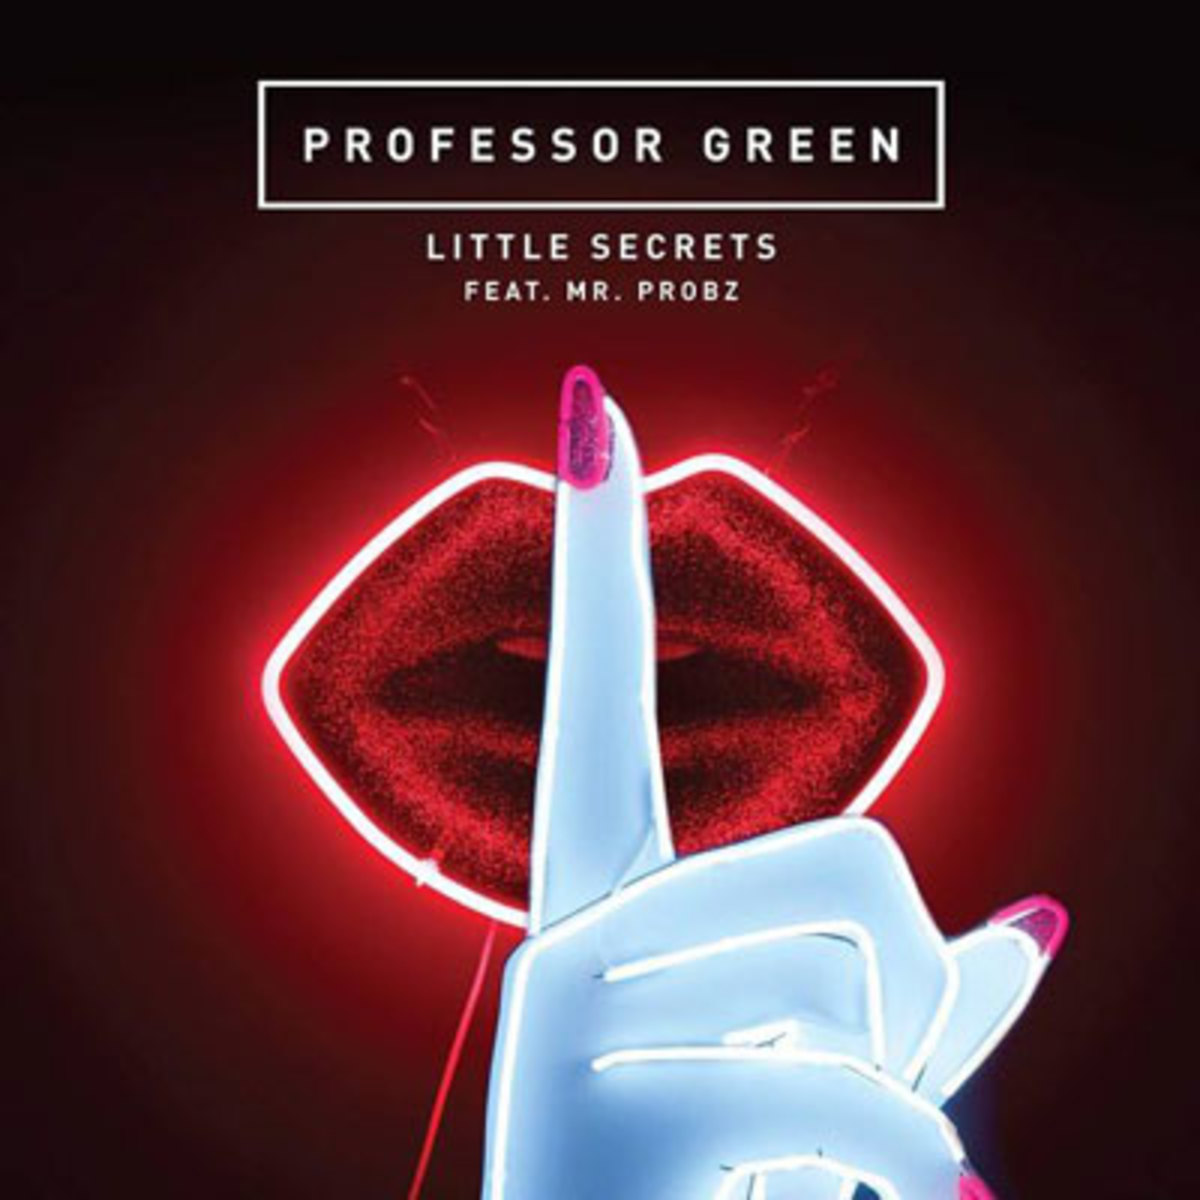 professorgreen-littlesecrets.jpg